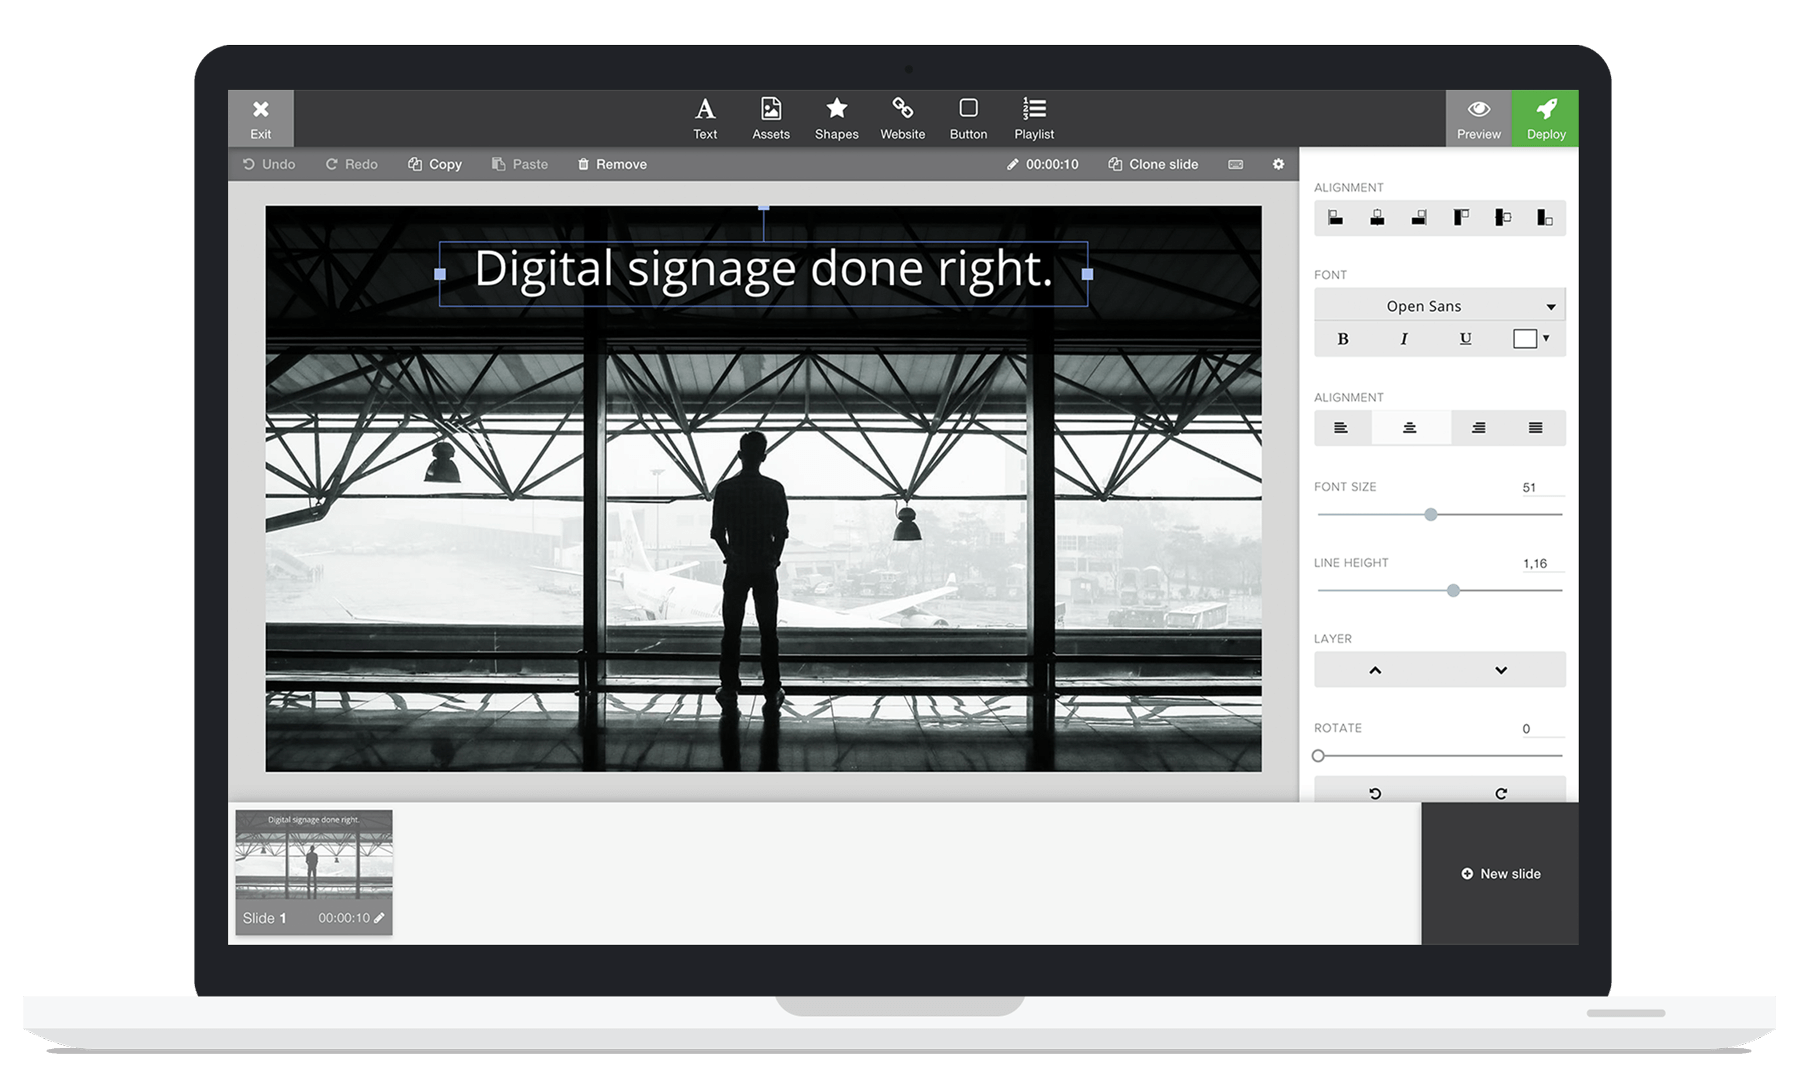 Design beautiful digital signage content with a built-in editor